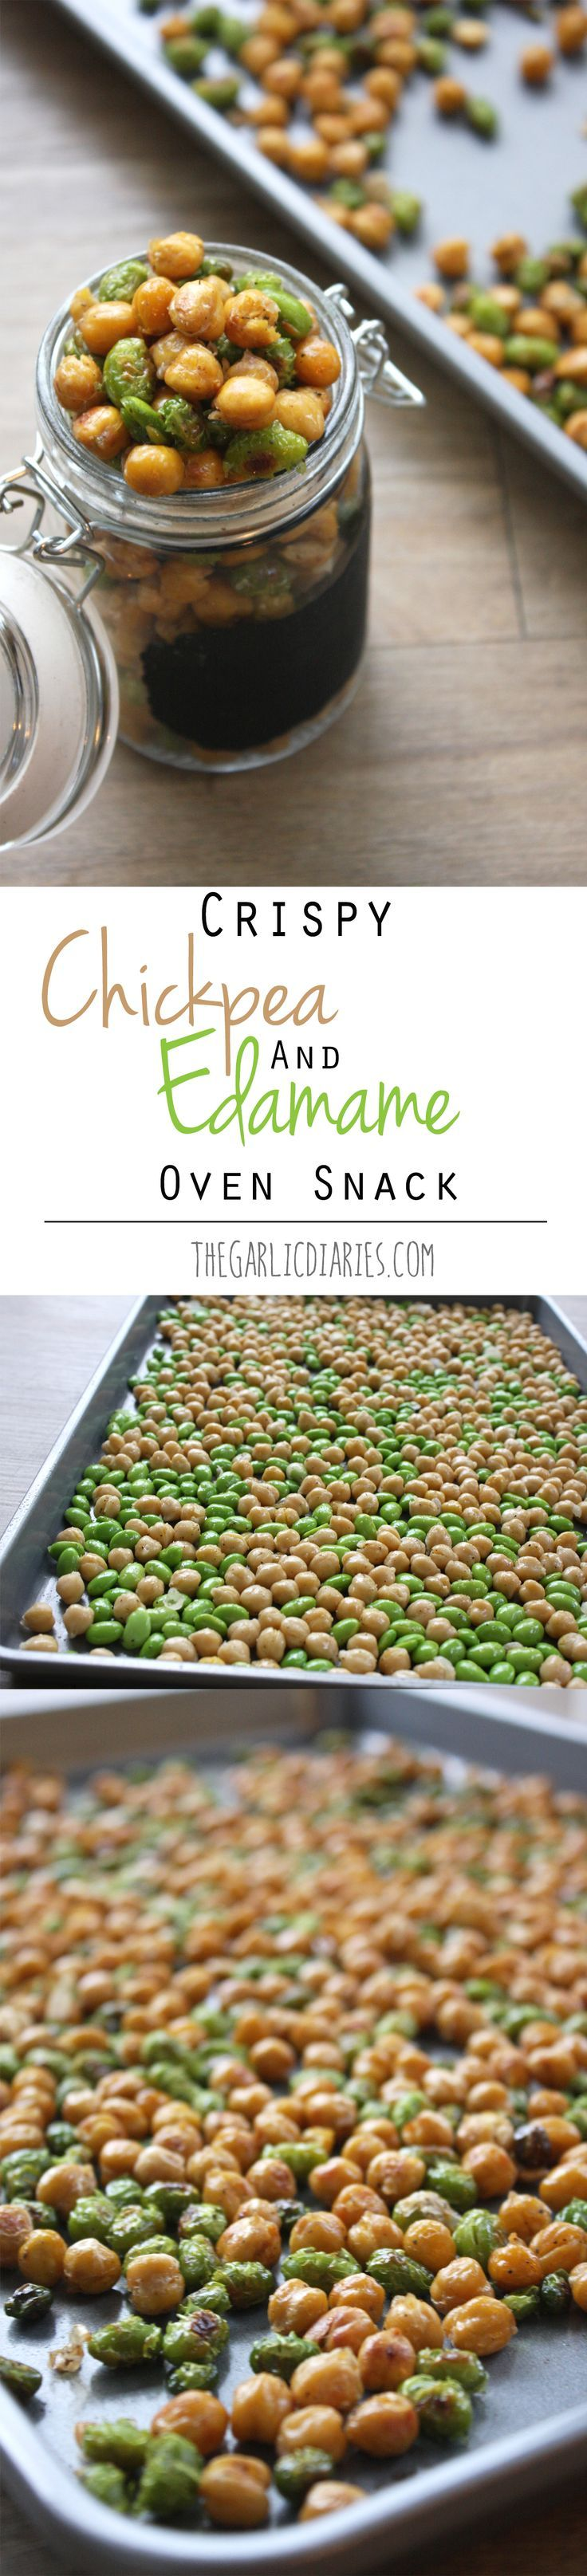 The only thing better than a healthy snack is a DELICIOUS, healthy snack! Learn to make Crispy Chickpea and Edamame Oven Snack on TheGarlicDiaries.com